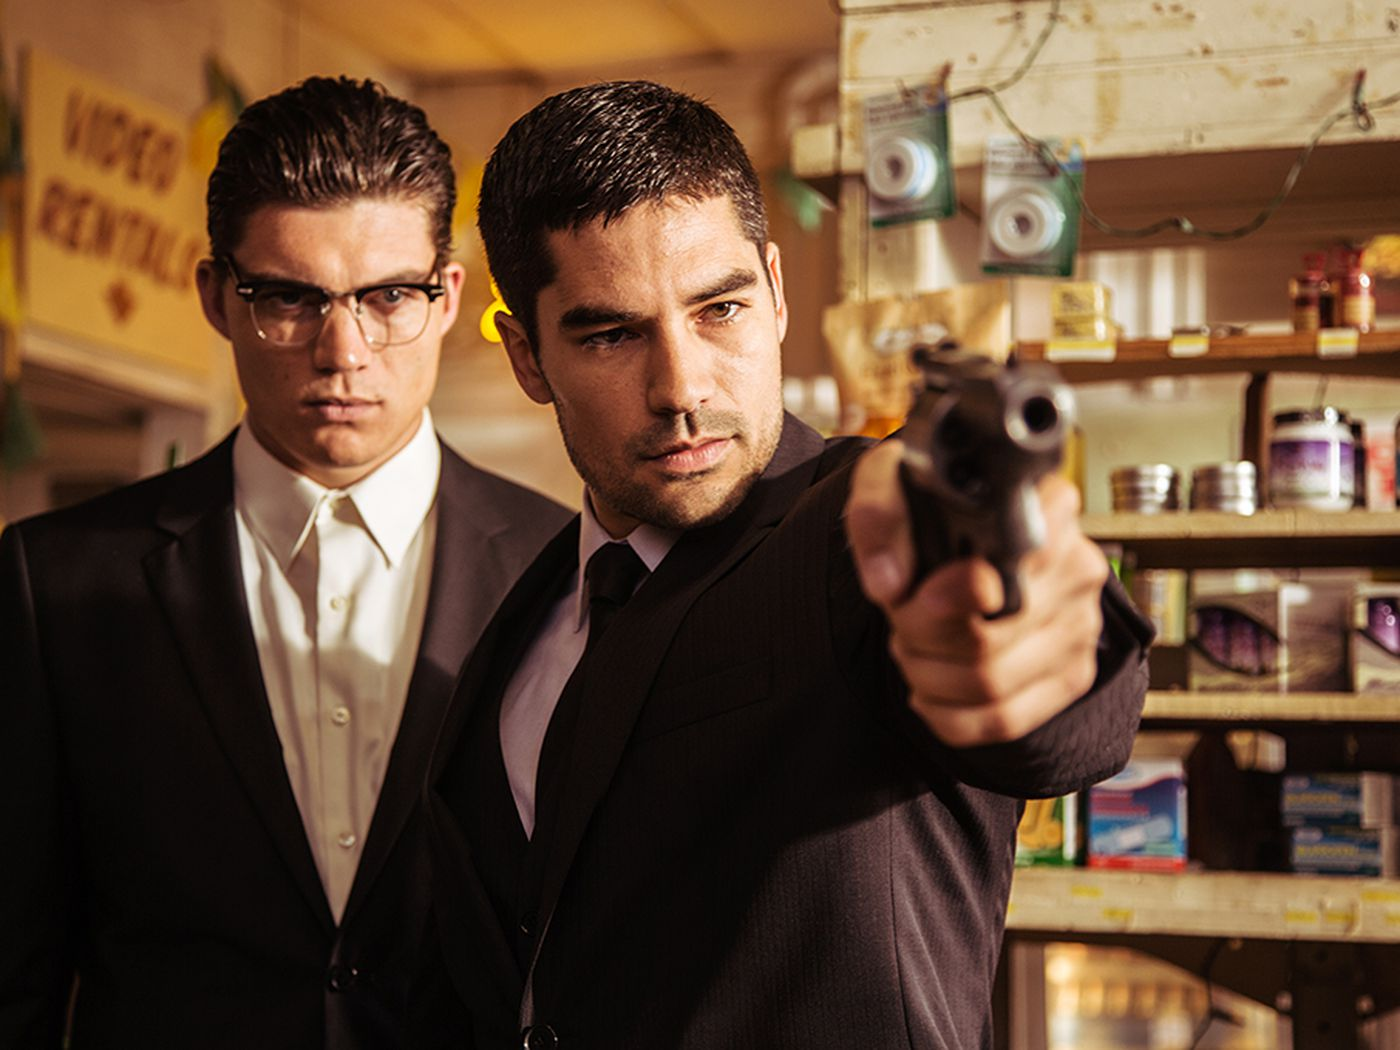 The From Dusk Till Dawn Series Is Now Available On Netflix For